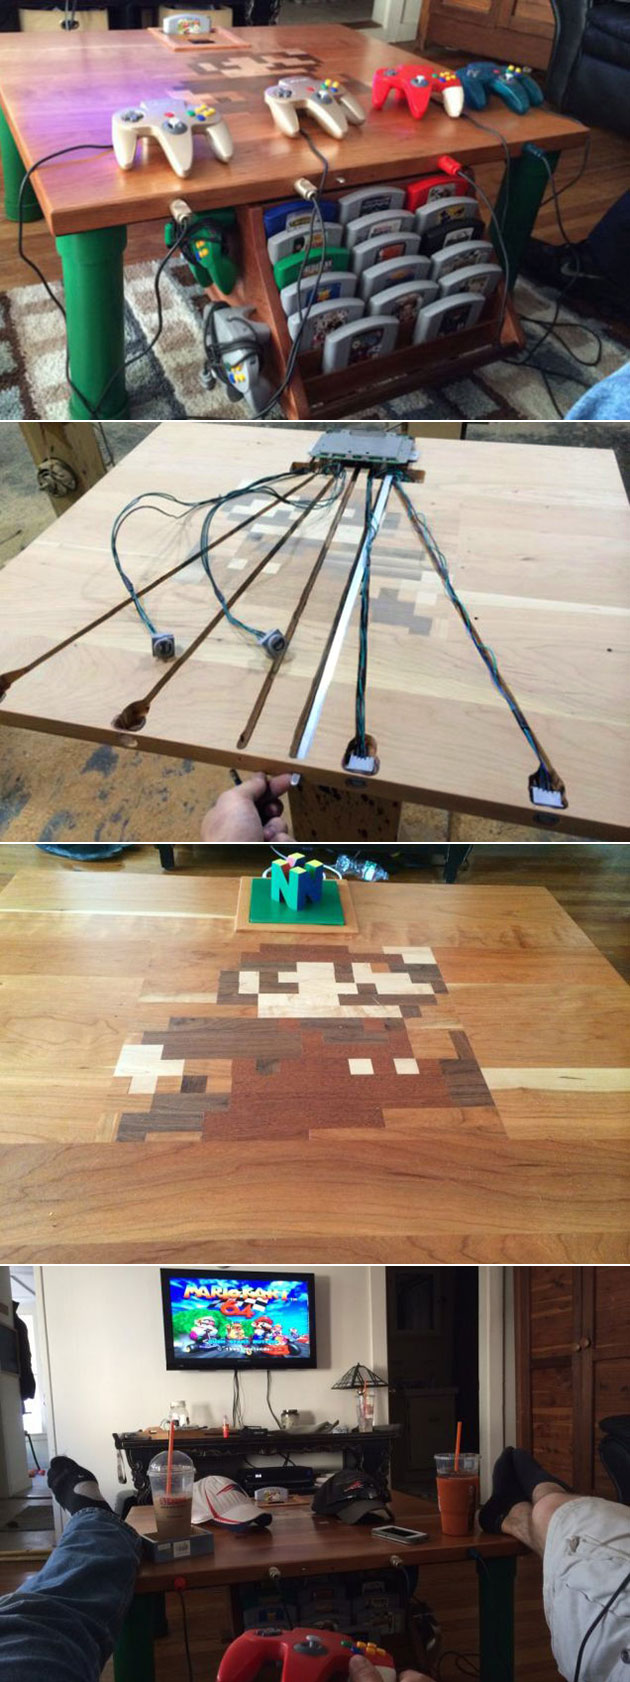 N64 Coffee Table